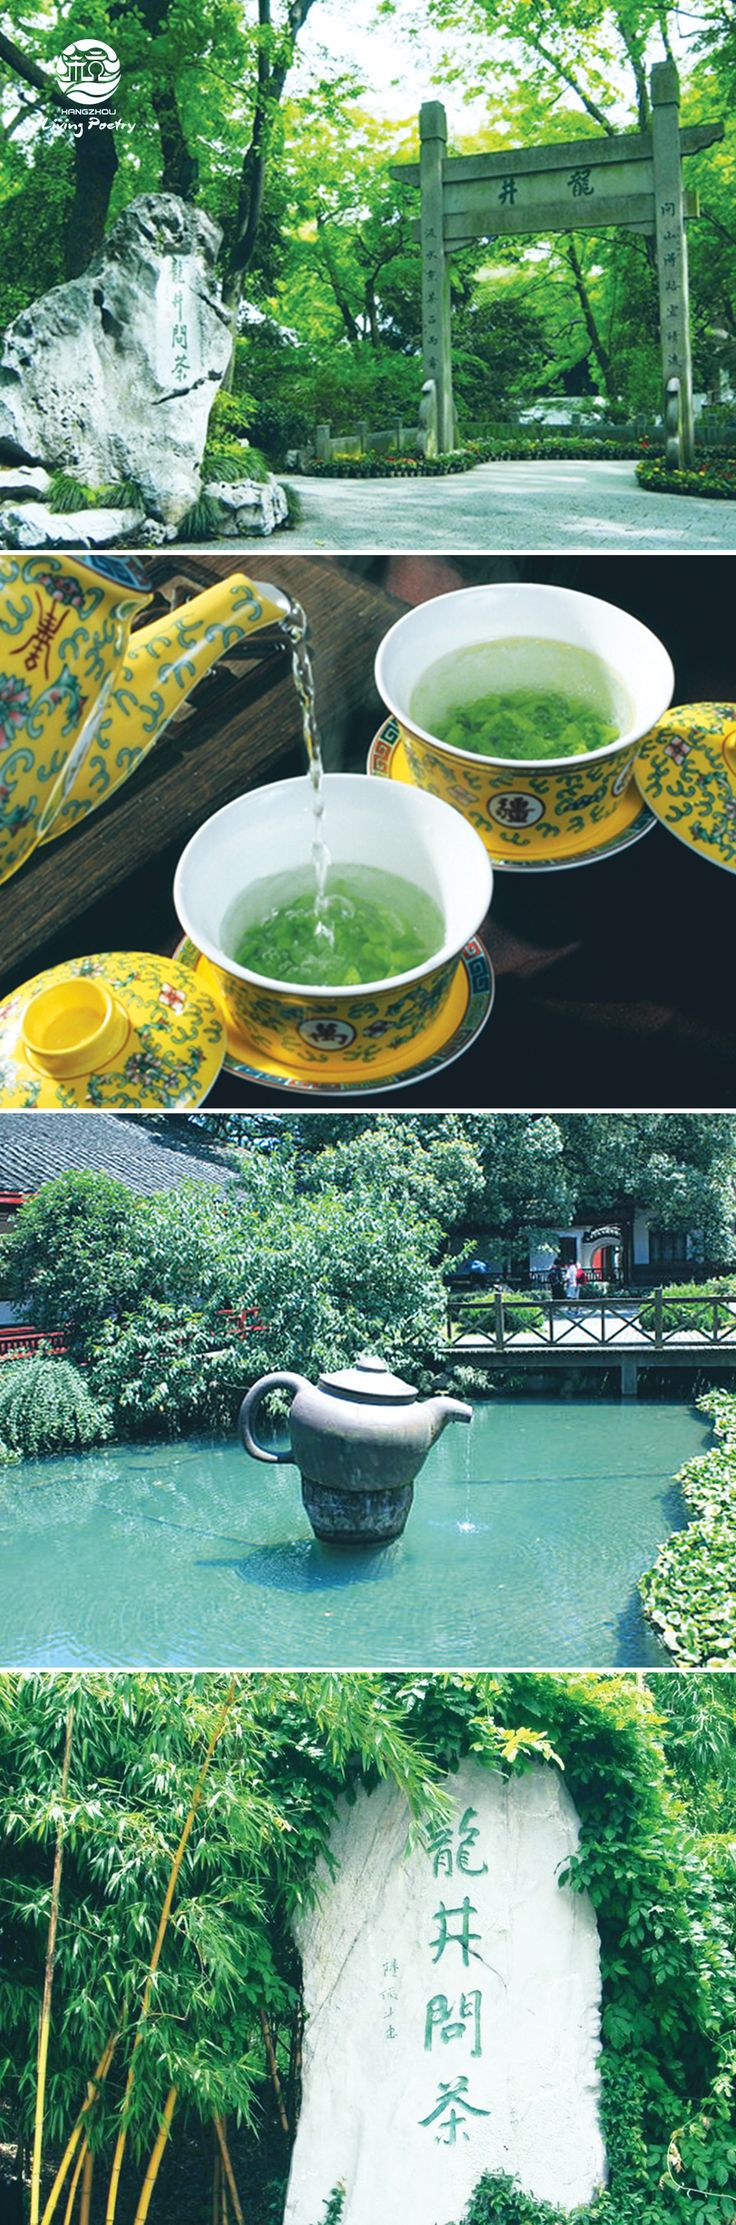 Dragon Well (Longjing) has a long history in China and is an inseparate part of Hangzhou's traditional tea culture.